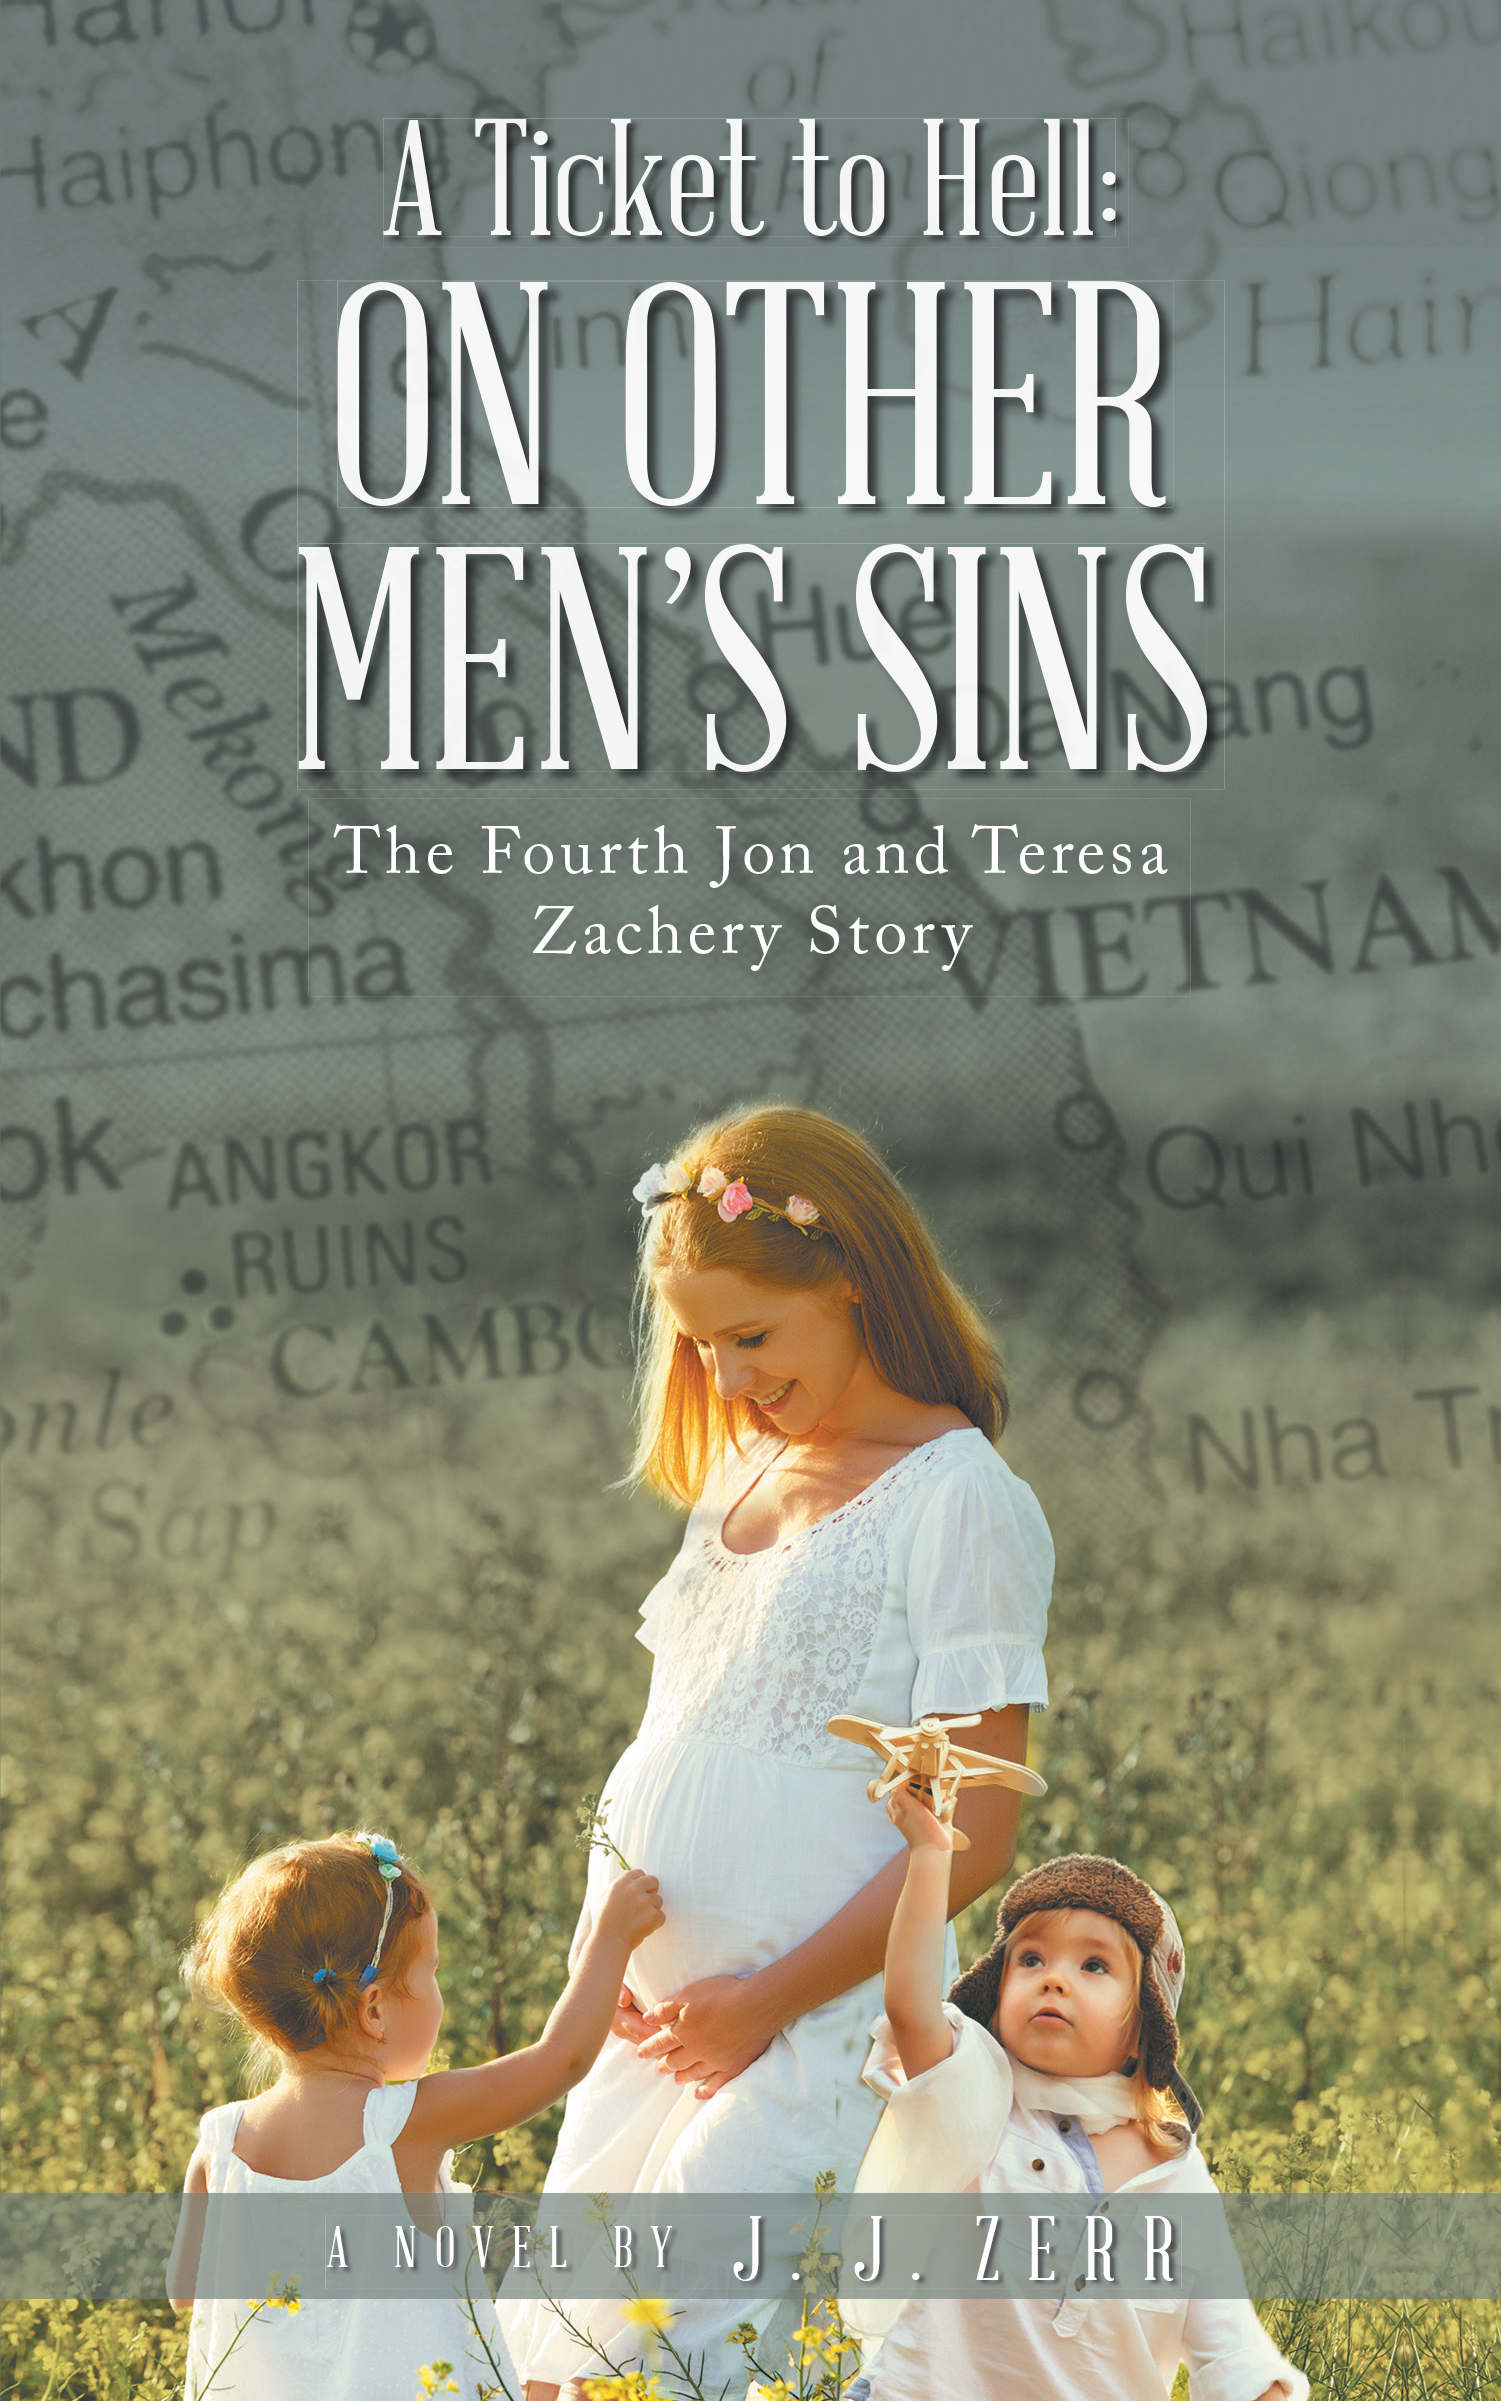 A TICKET TO HELL : ON OTHER MEN'S SINS